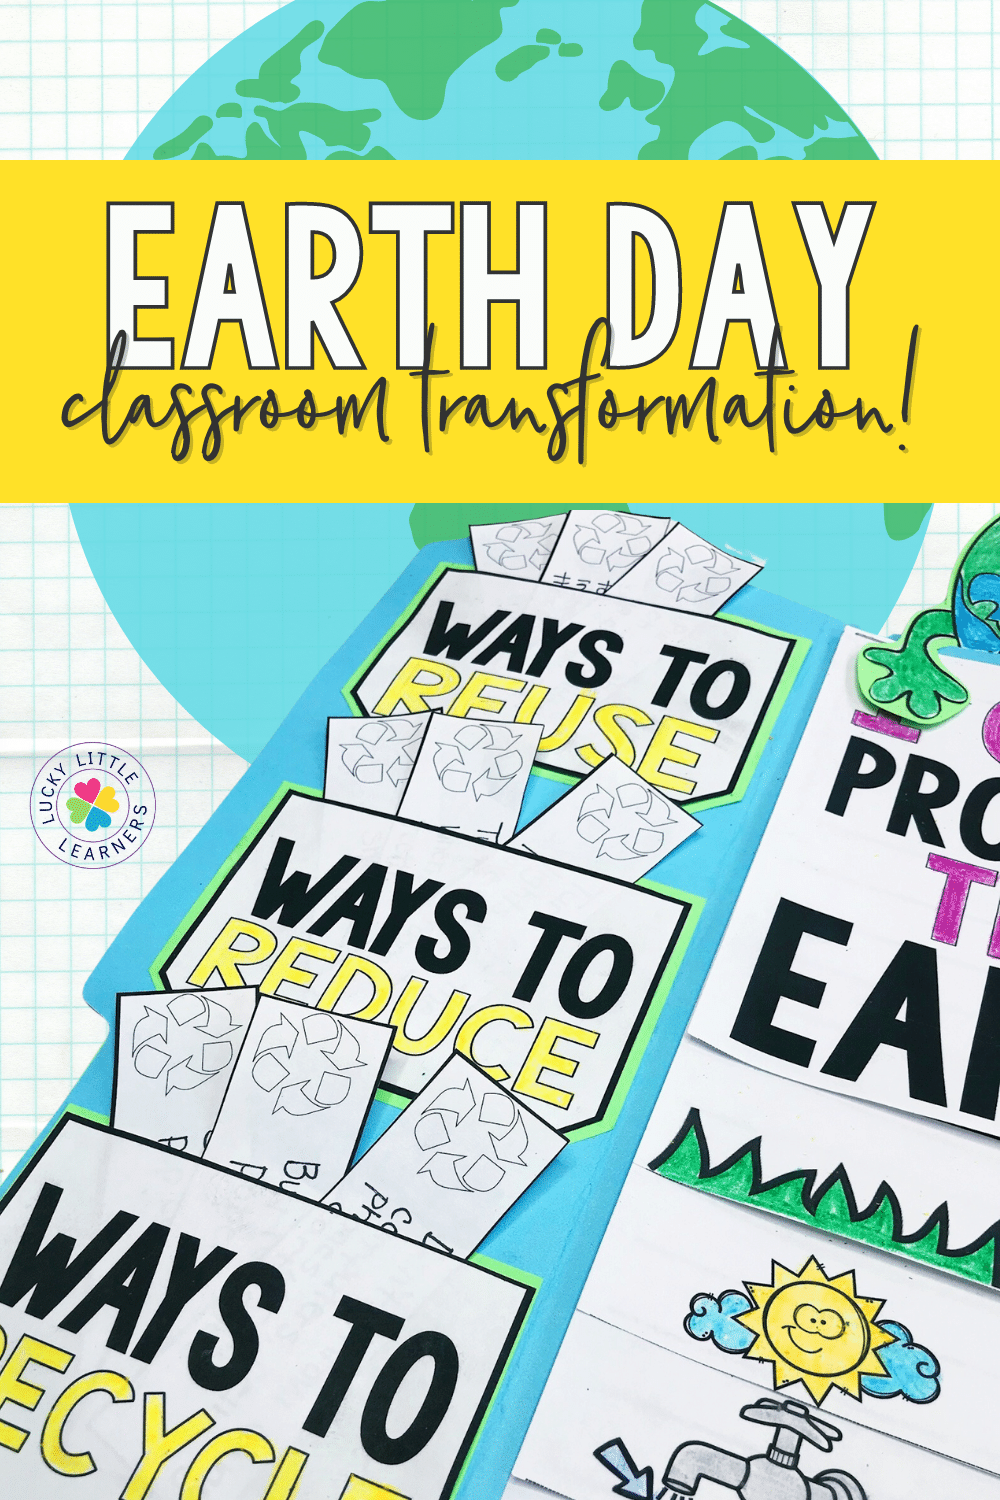 Want to amp up the Earth Day celebration in your classroom? Try out an Earth Day classroom transformation!